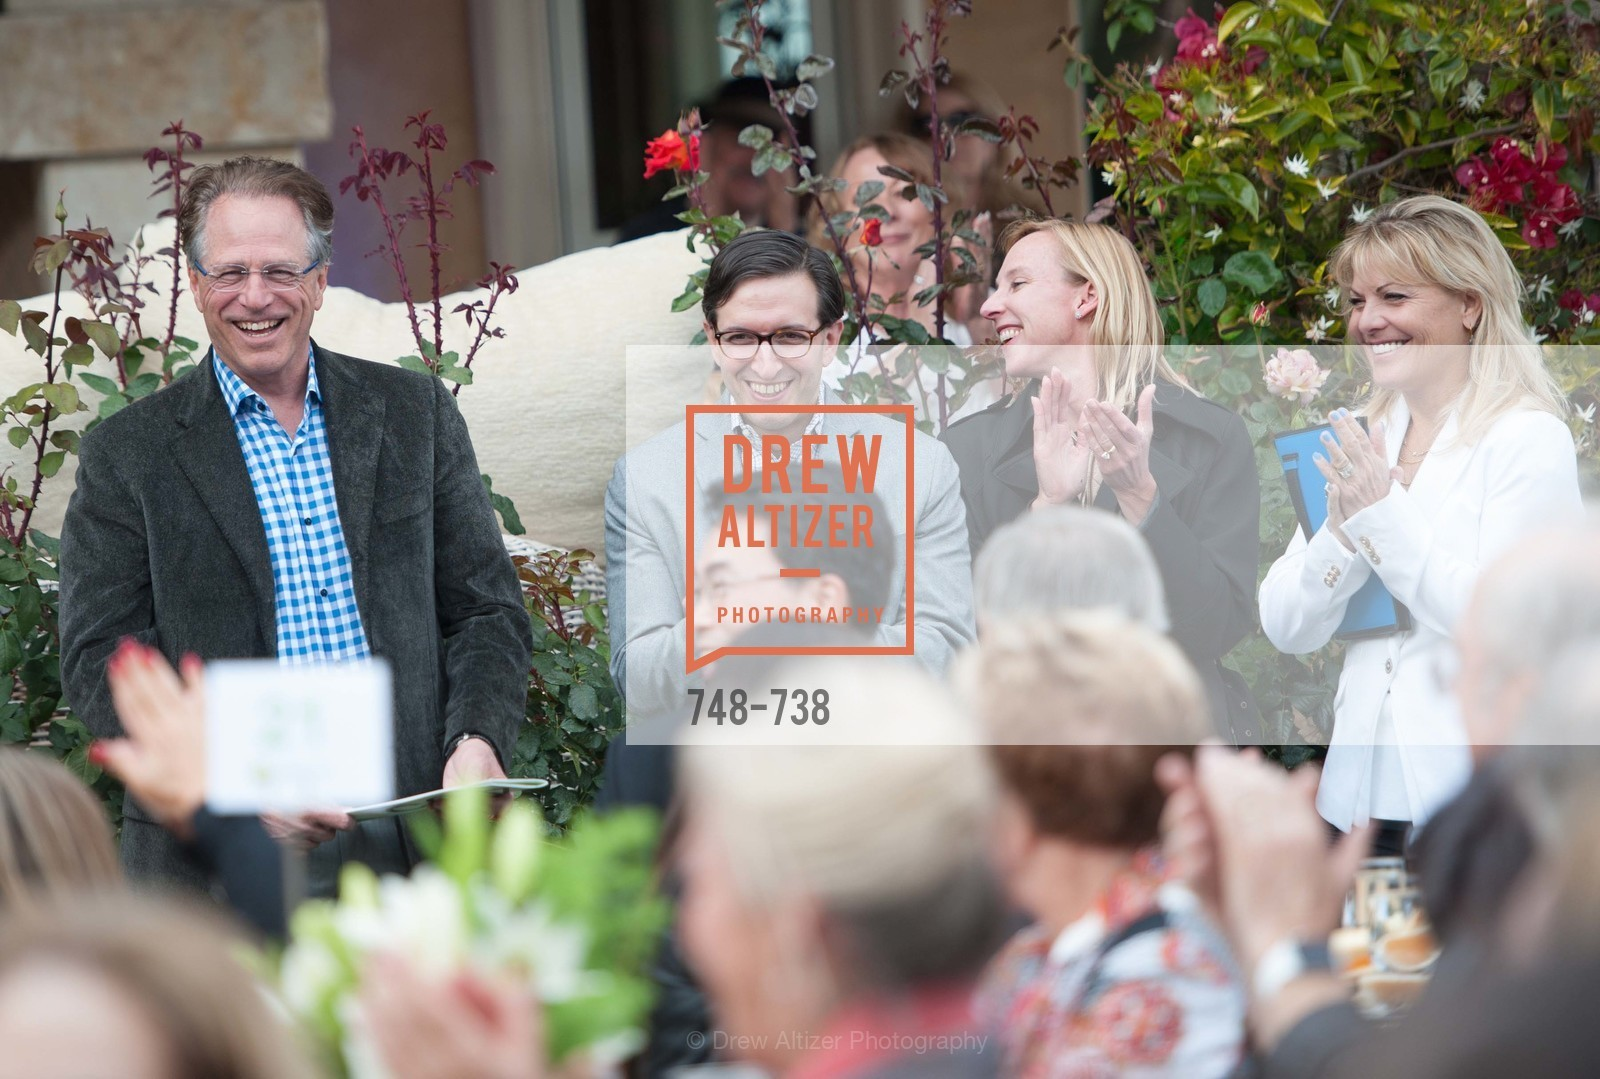 Bob Klein, Amir Rubin, Nicole Rubin, Danielle Klein, LymeAid 2015, US, May 18th, 2015,Drew Altizer, Drew Altizer Photography, full-service agency, private events, San Francisco photographer, photographer california